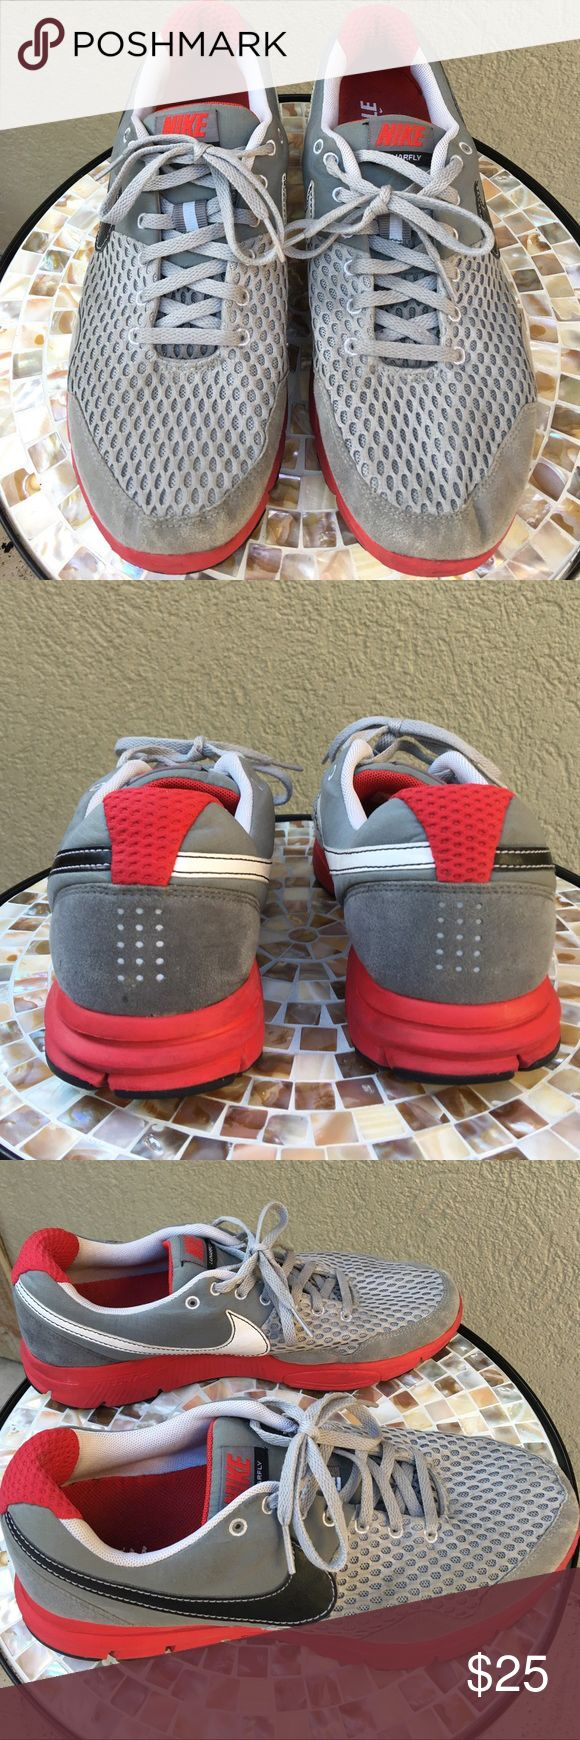 🆕Men's Nike Tennis Shoes Men's Nike sneakers - Red, grey, with black accent colors EUC. ✅I ship same or next day ✅Bundle for discount Nike Shoes Sneakers